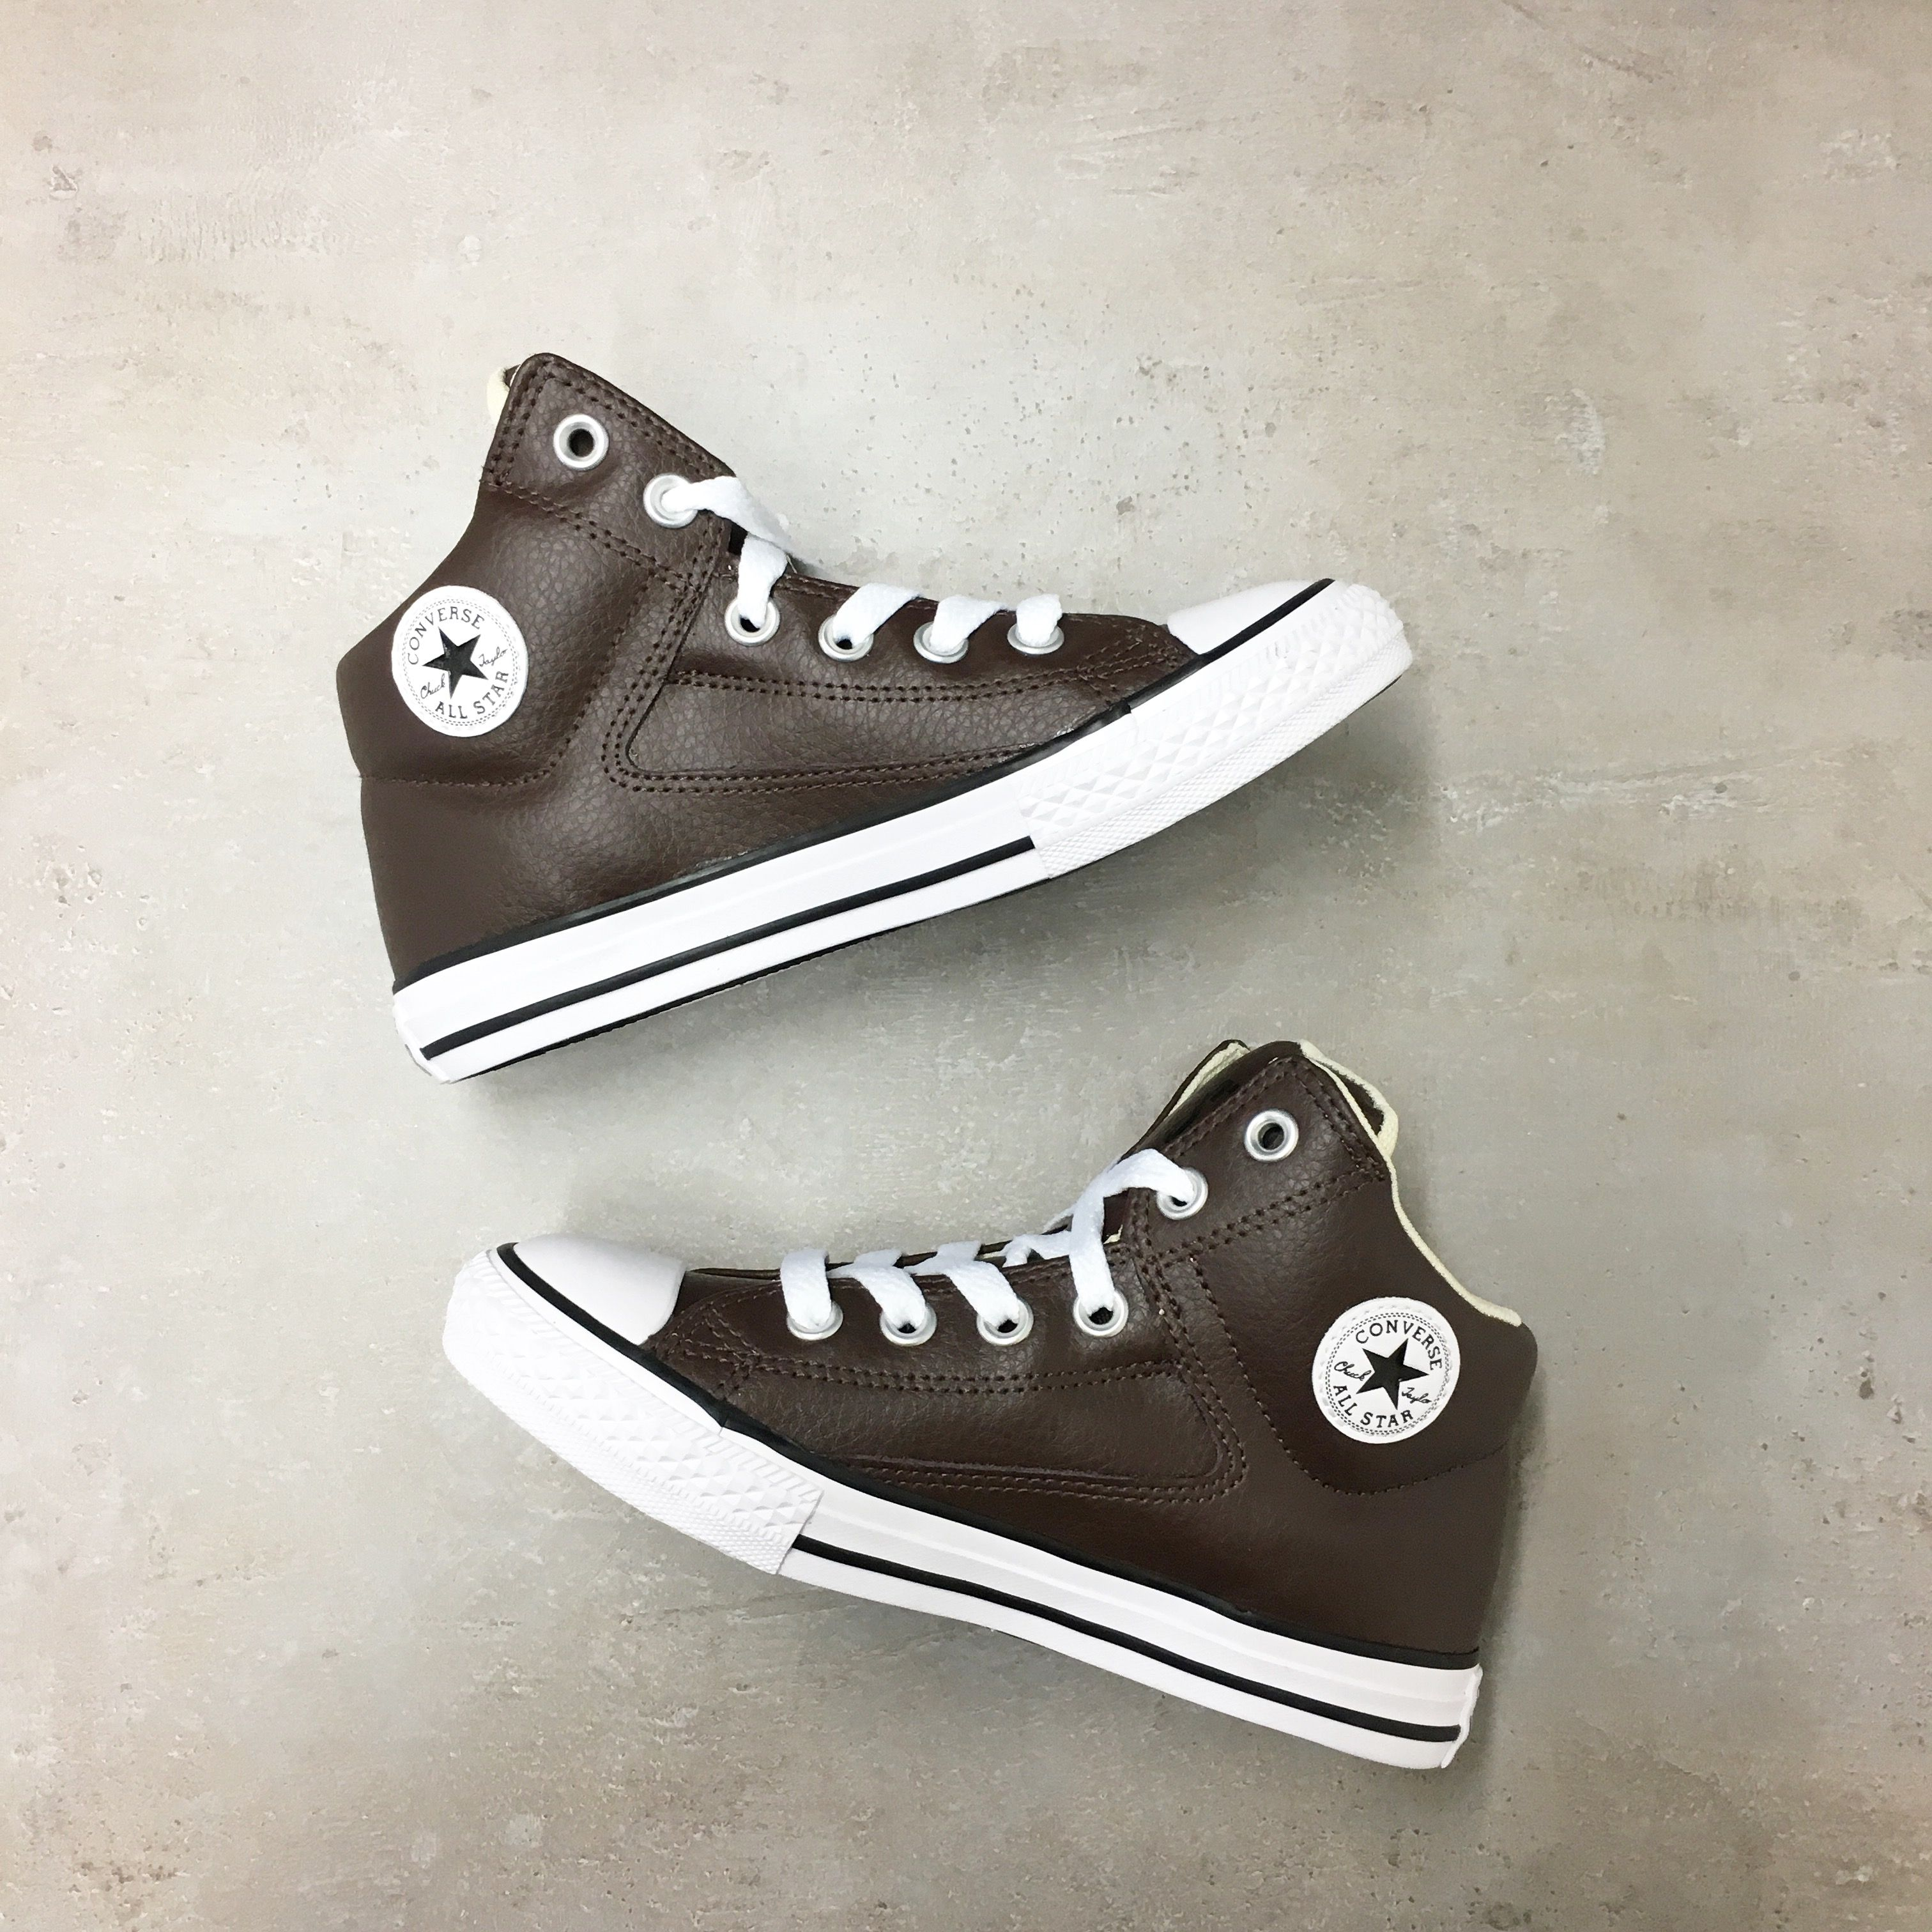 CONVERSE All Star Chuck Taylor High Street 👟 Artikel ID: 33735